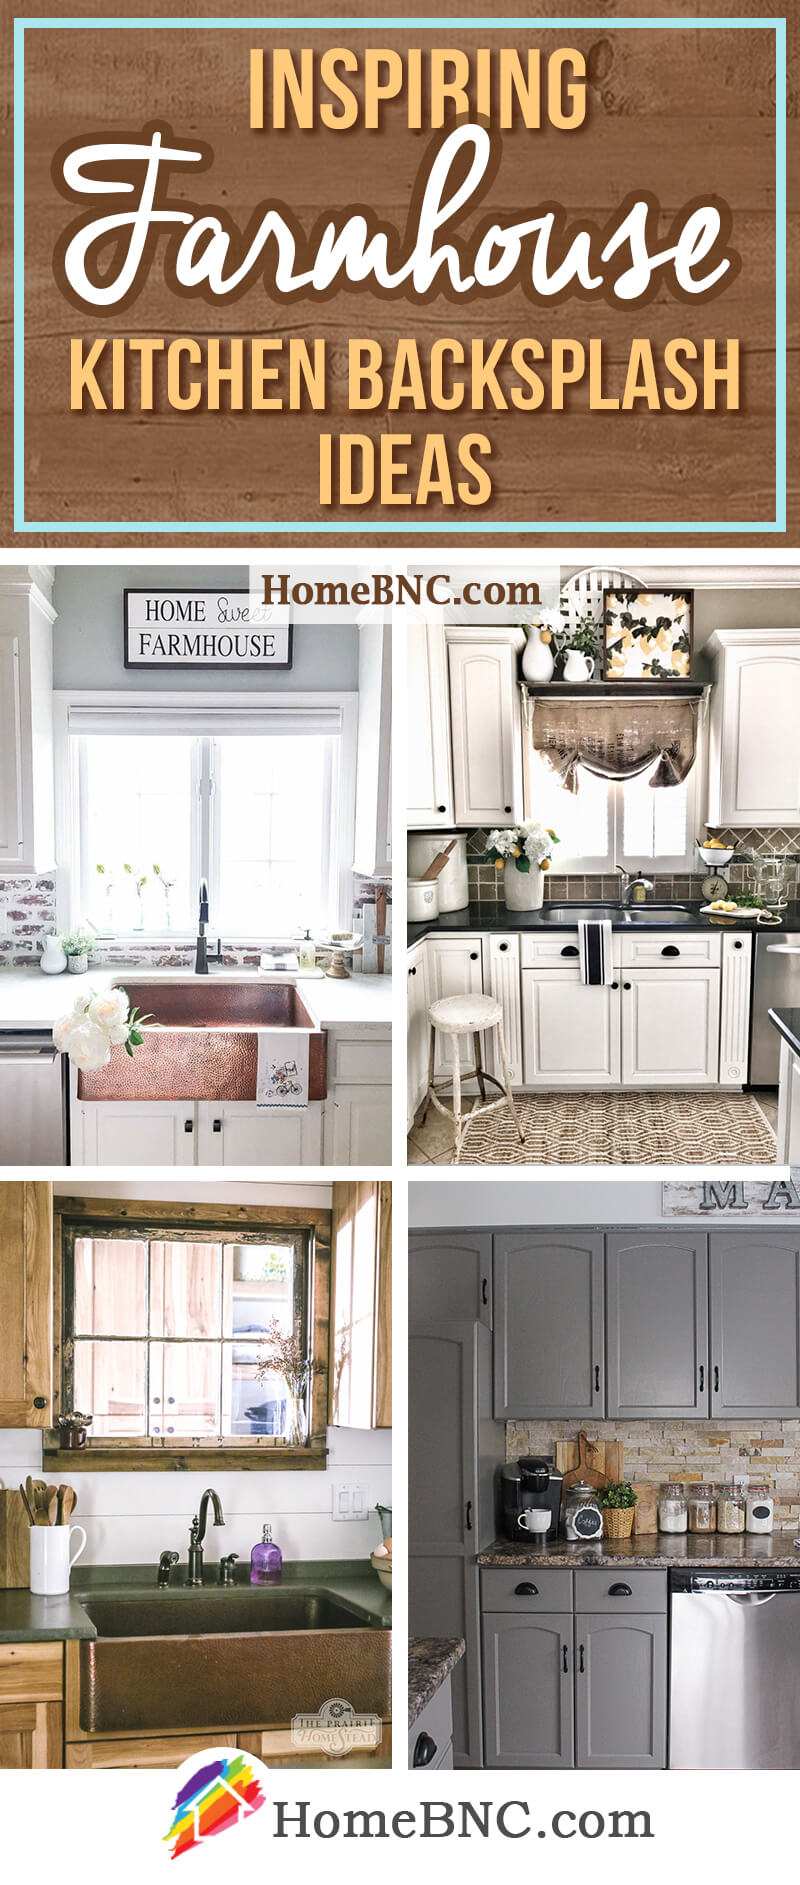 8 Best Farmhouse Kitchen Backsplash Ideas And Designs For 2018